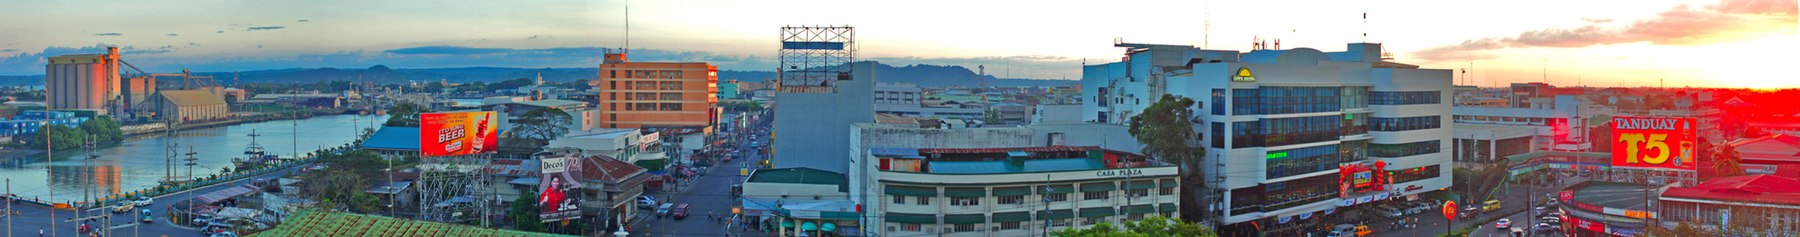 Downtown Iloilo City Panorama.jpg